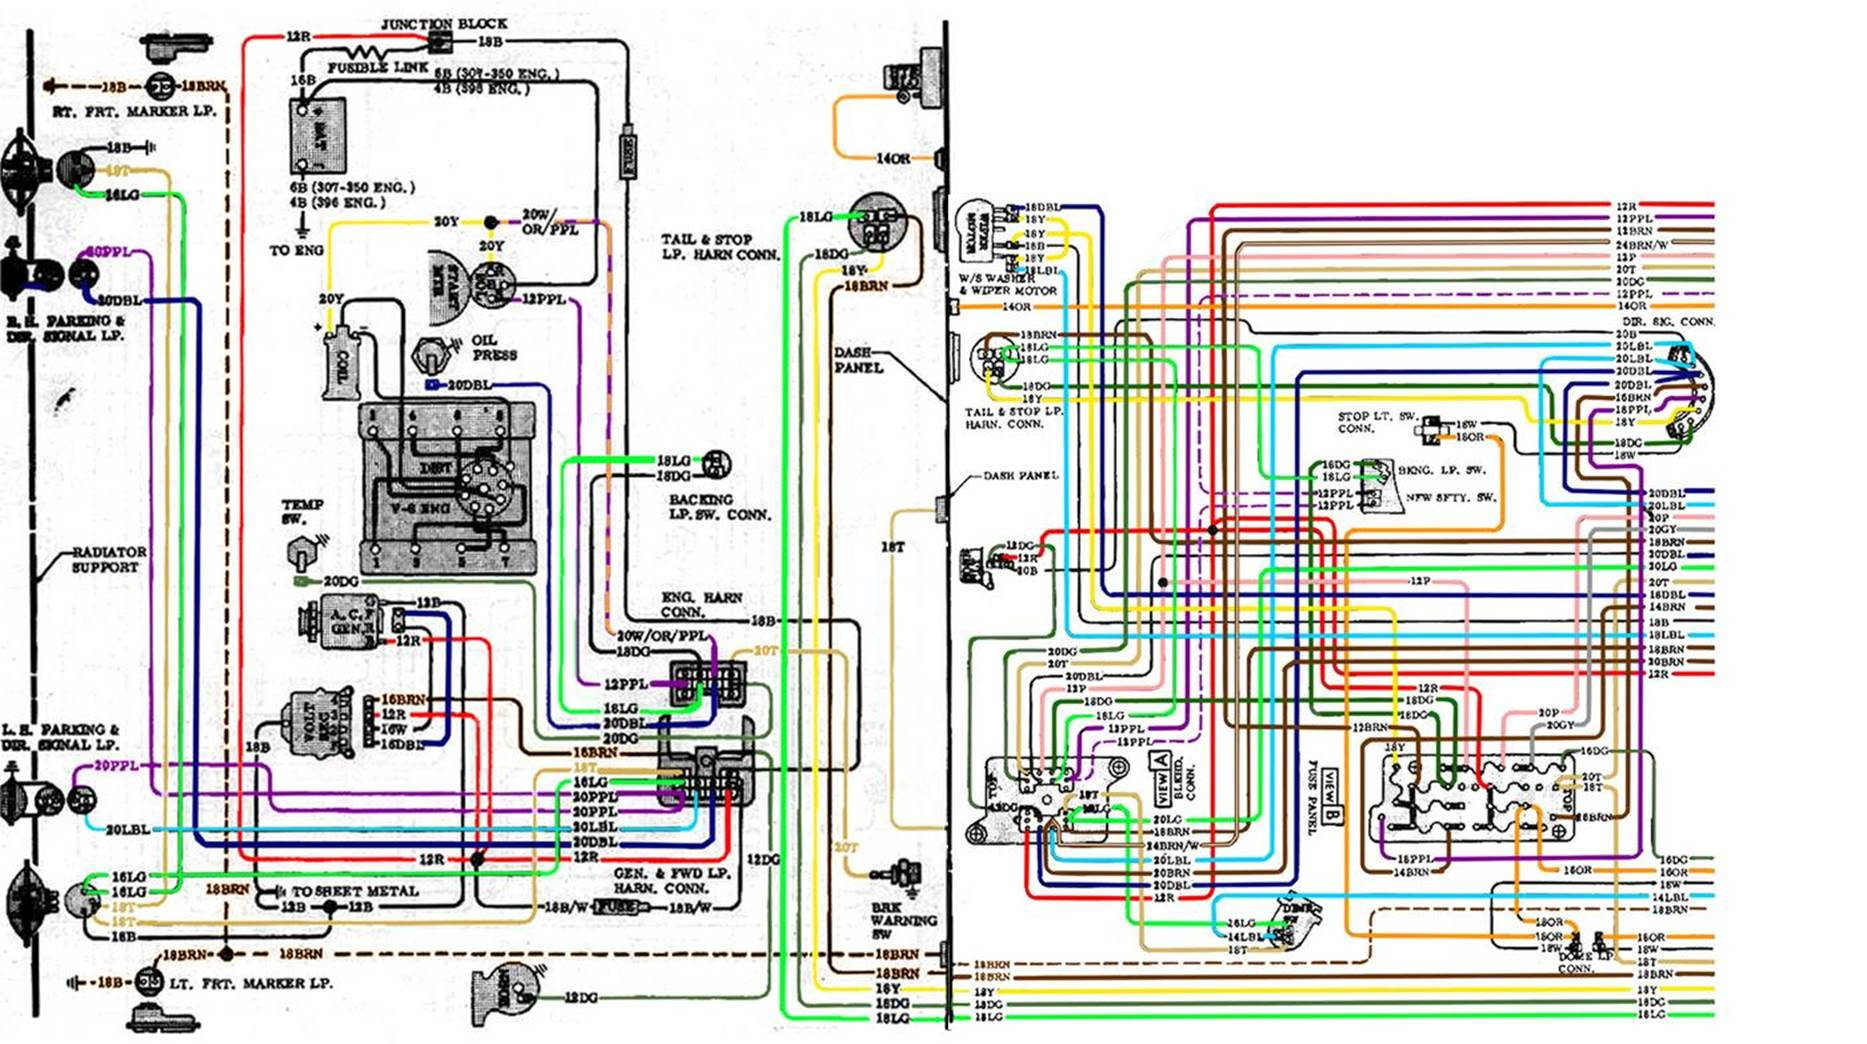 image002 67 72 chevy wiring diagram 67 chevelle ignition switch wiring diagram at edmiracle.co